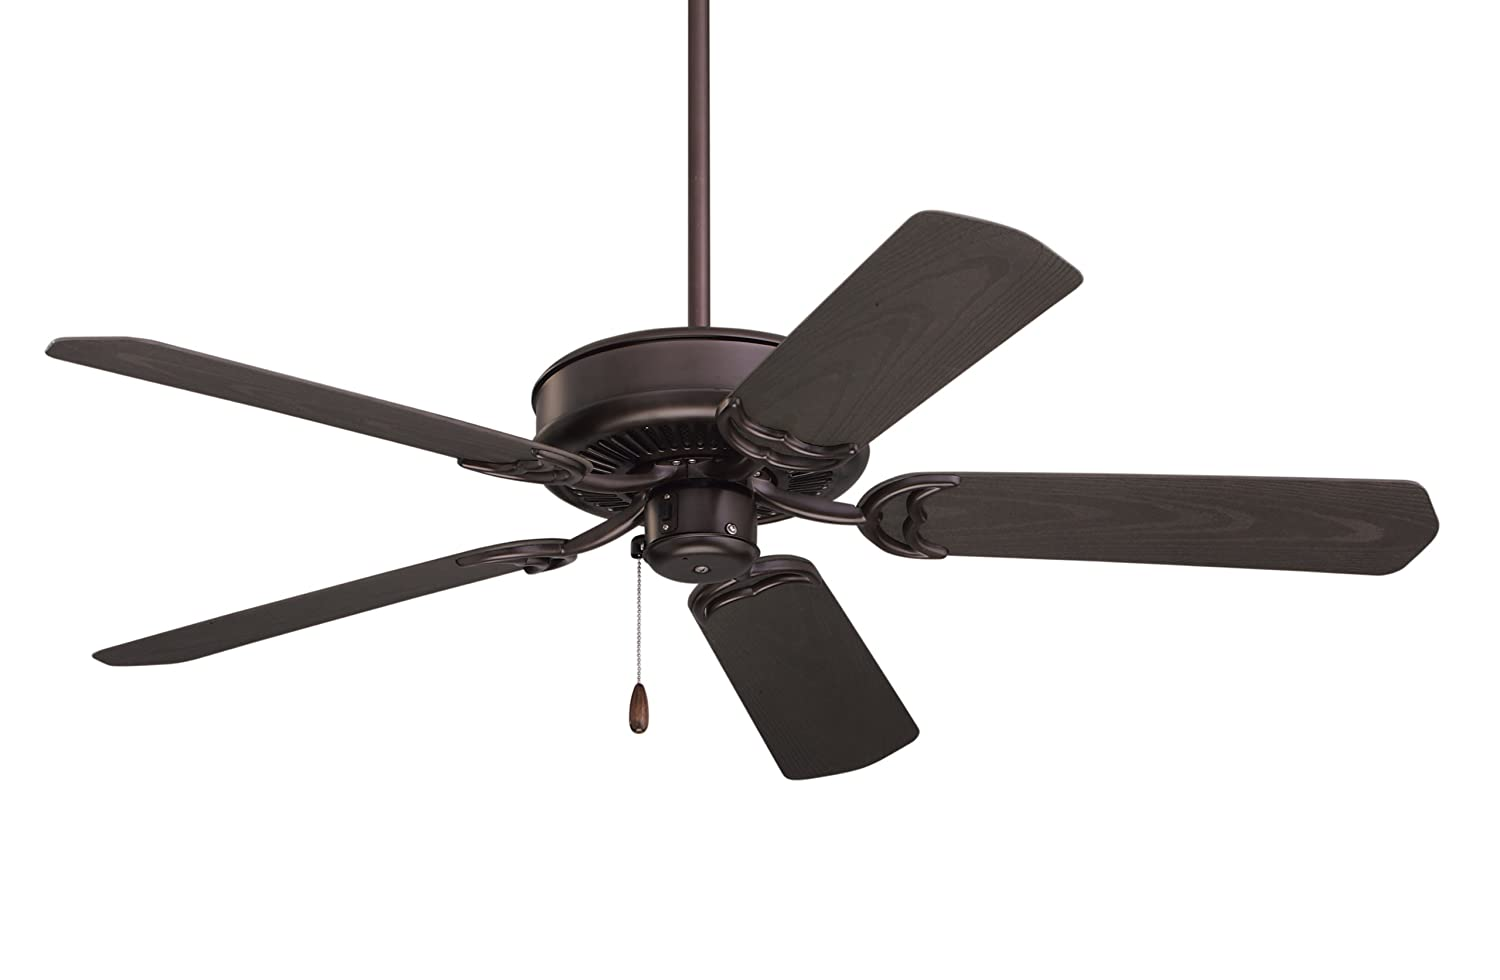 Emerson cf654orb sea breeze 52 inch ceiling fan with light kit and emerson cf654orb sea breeze 52 inch ceiling fan with light kit and remotewall control oil rubbed bronze finish amazon aloadofball Image collections